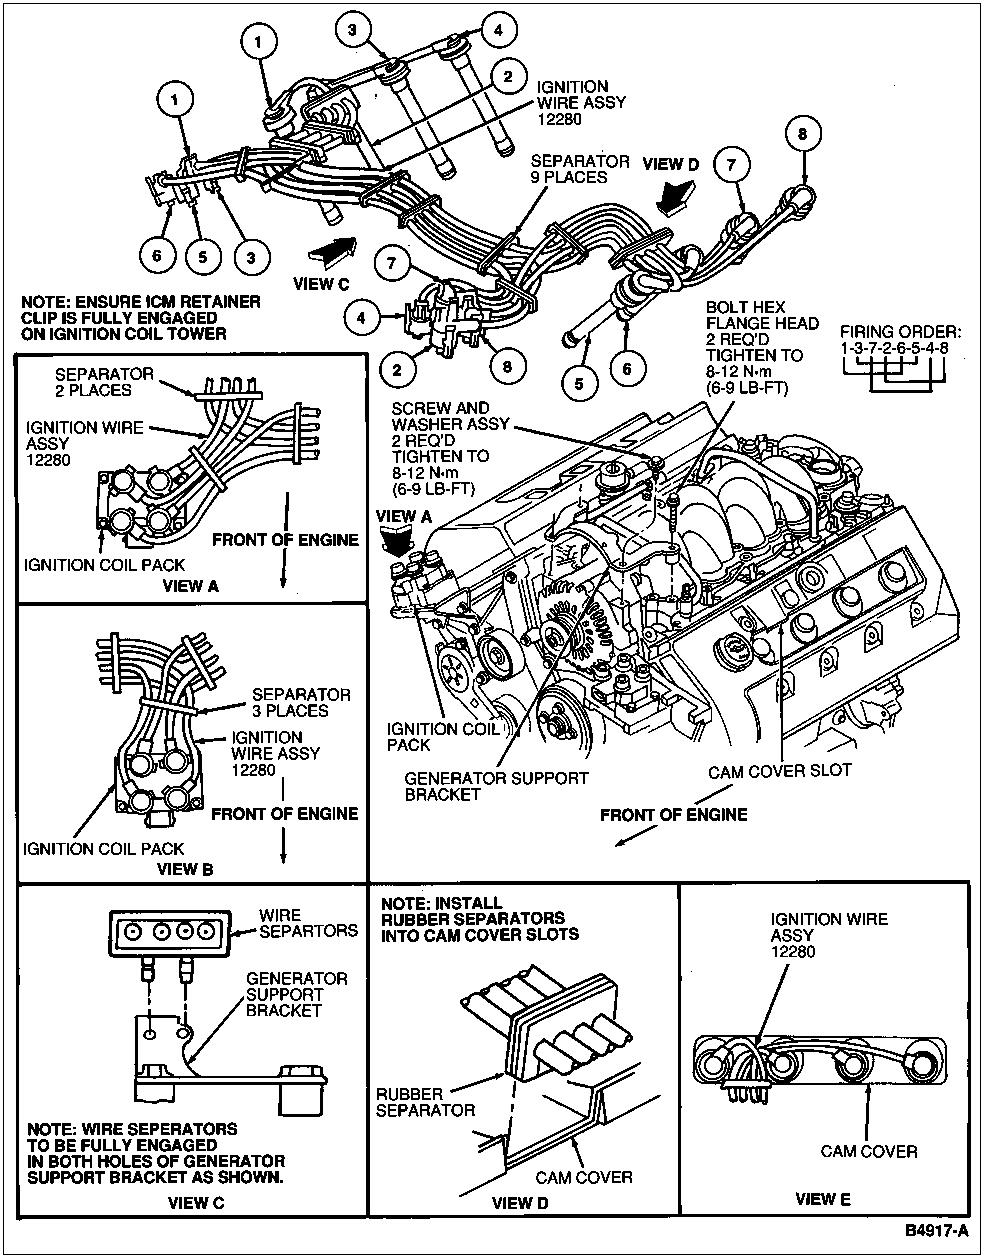 Discussion c4307 ds551809 moreover 95 deville spark plug wiring diagram moreover 1975 cadillac deville diagrams moreover